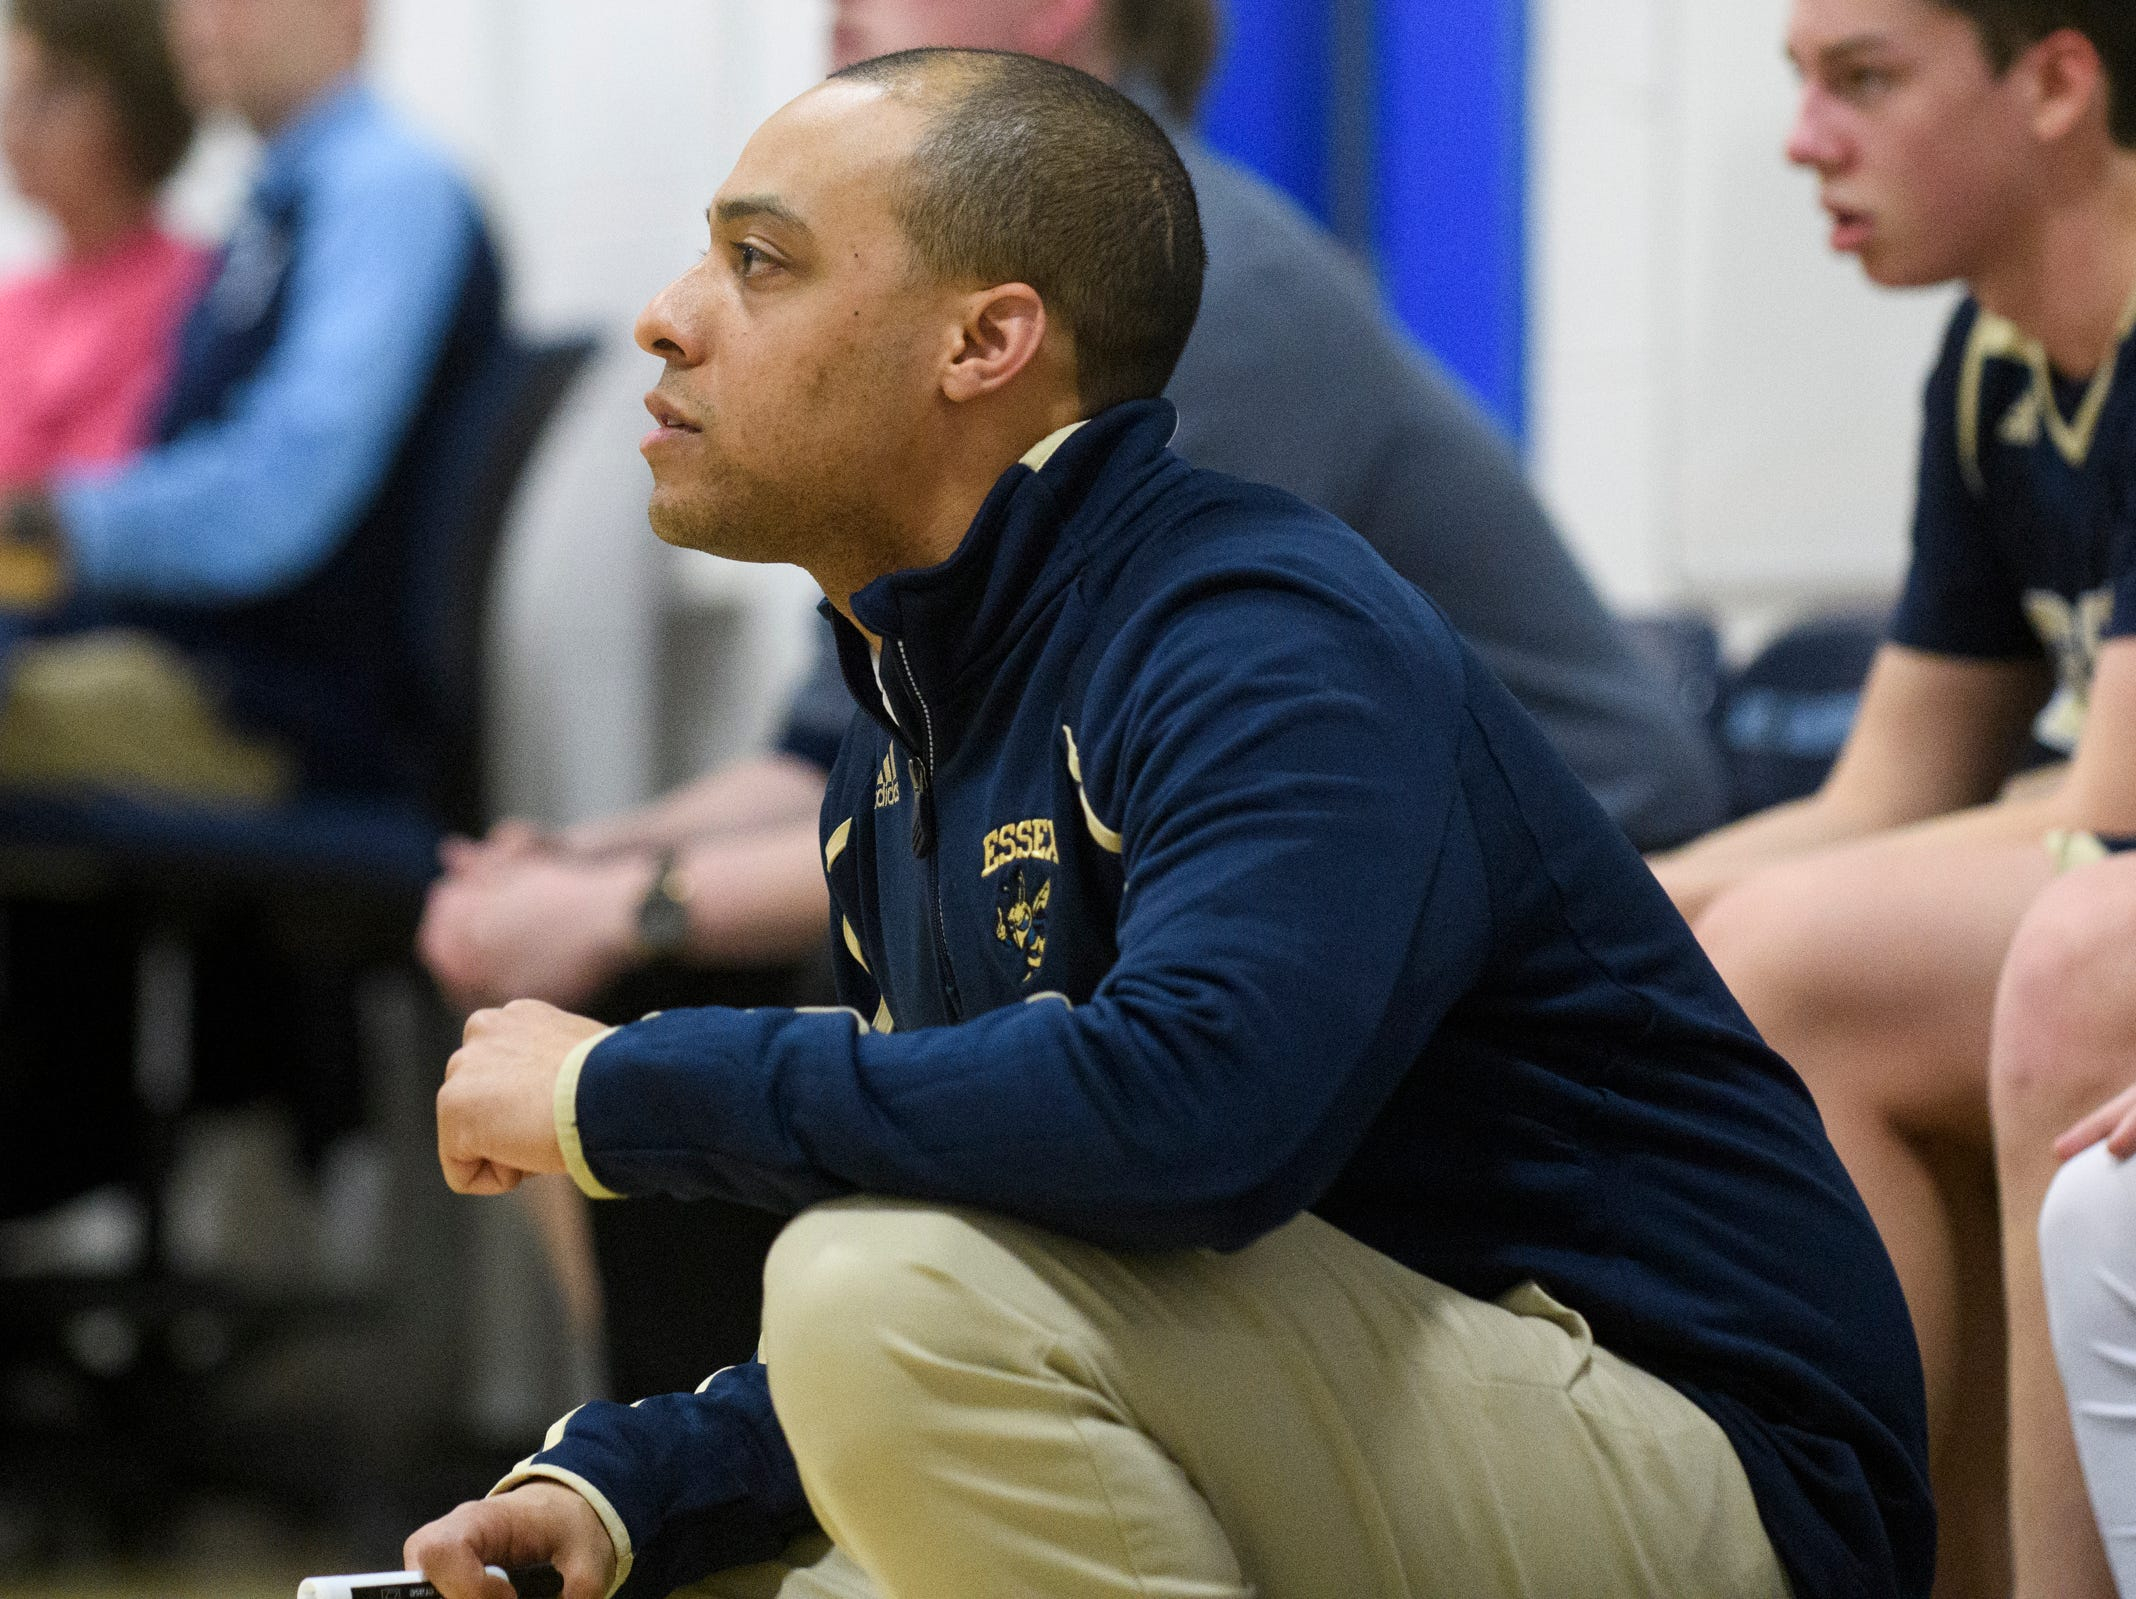 Essex head coach Jesse Coutrayer watches the action on the court during the boys basketball game between the Essex Hornets and the Mount Mansfield Cougars at MMU High School on Wednesday night February 13, 2019 in Jericho, Vermont.